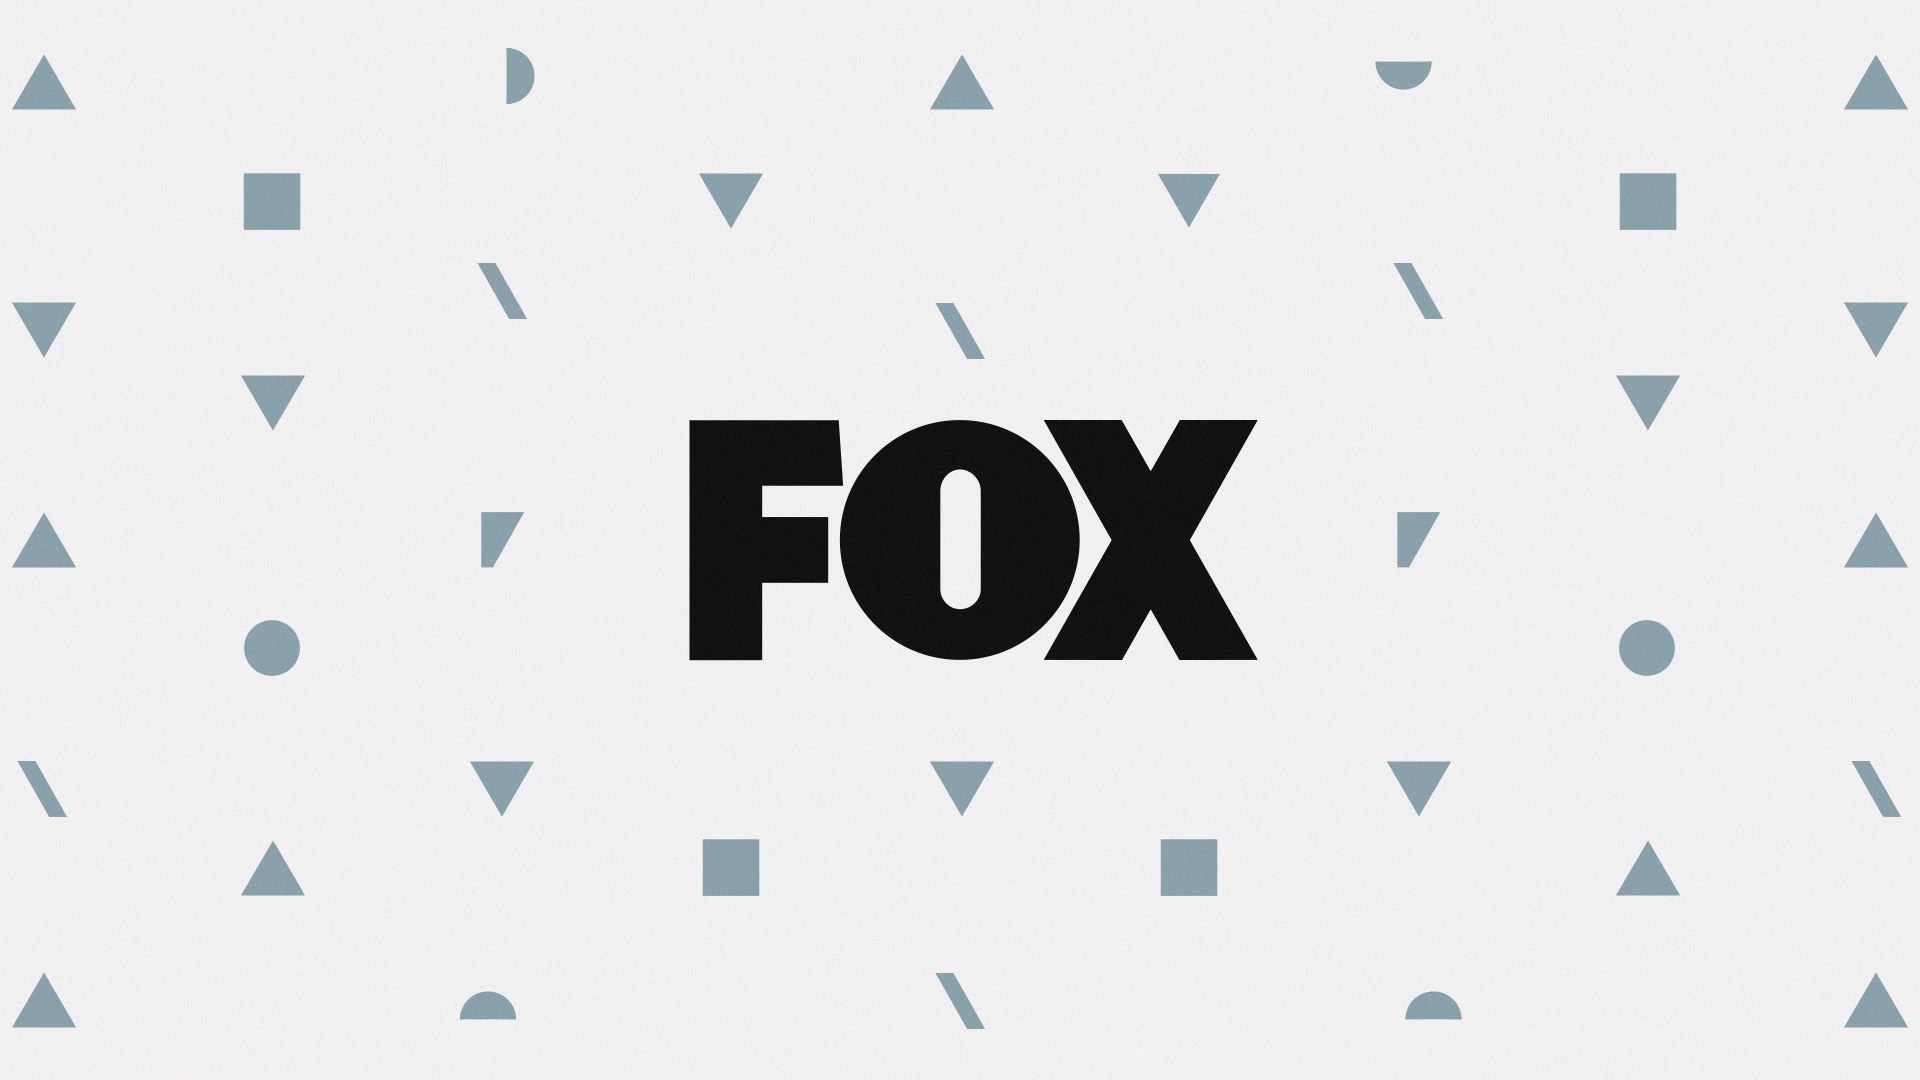 New Logo, Identity, and On-Air Look for FOX by Trollbäck + Company